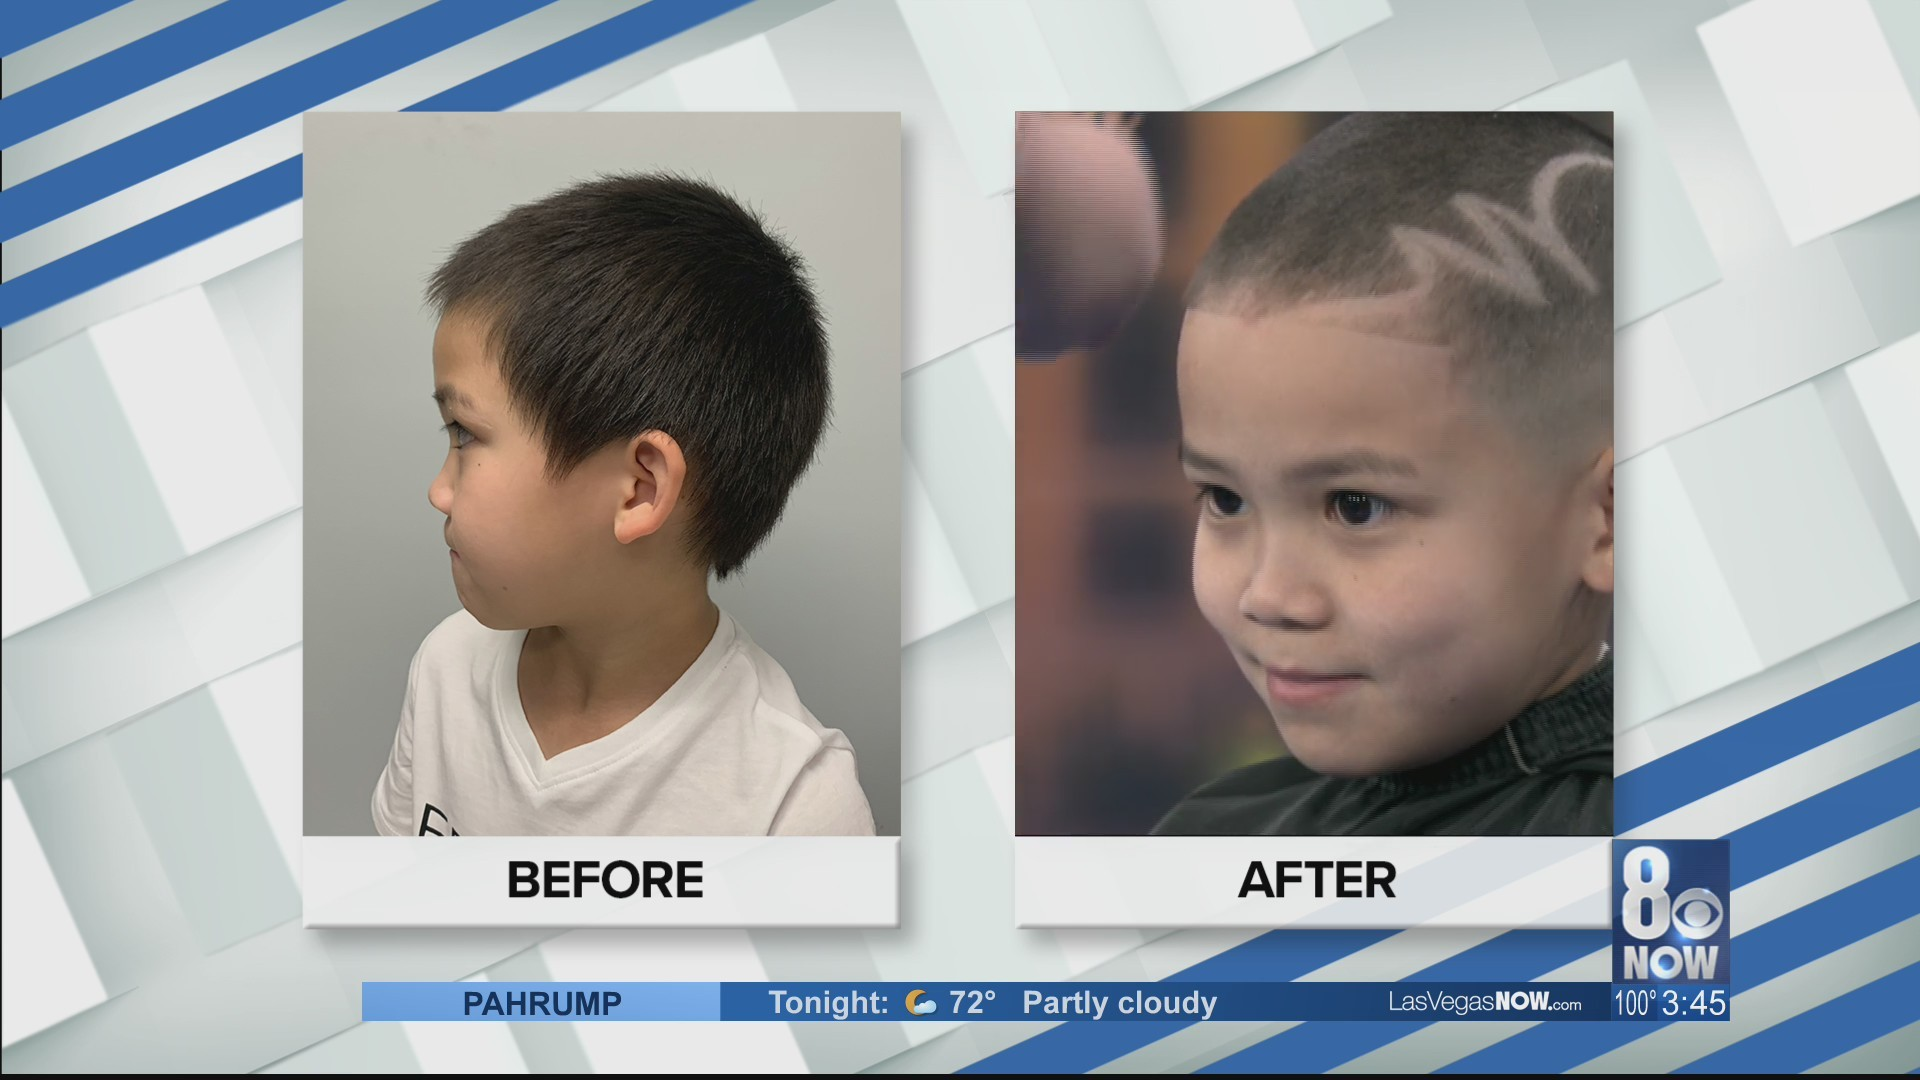 Free haircuts for kids in need